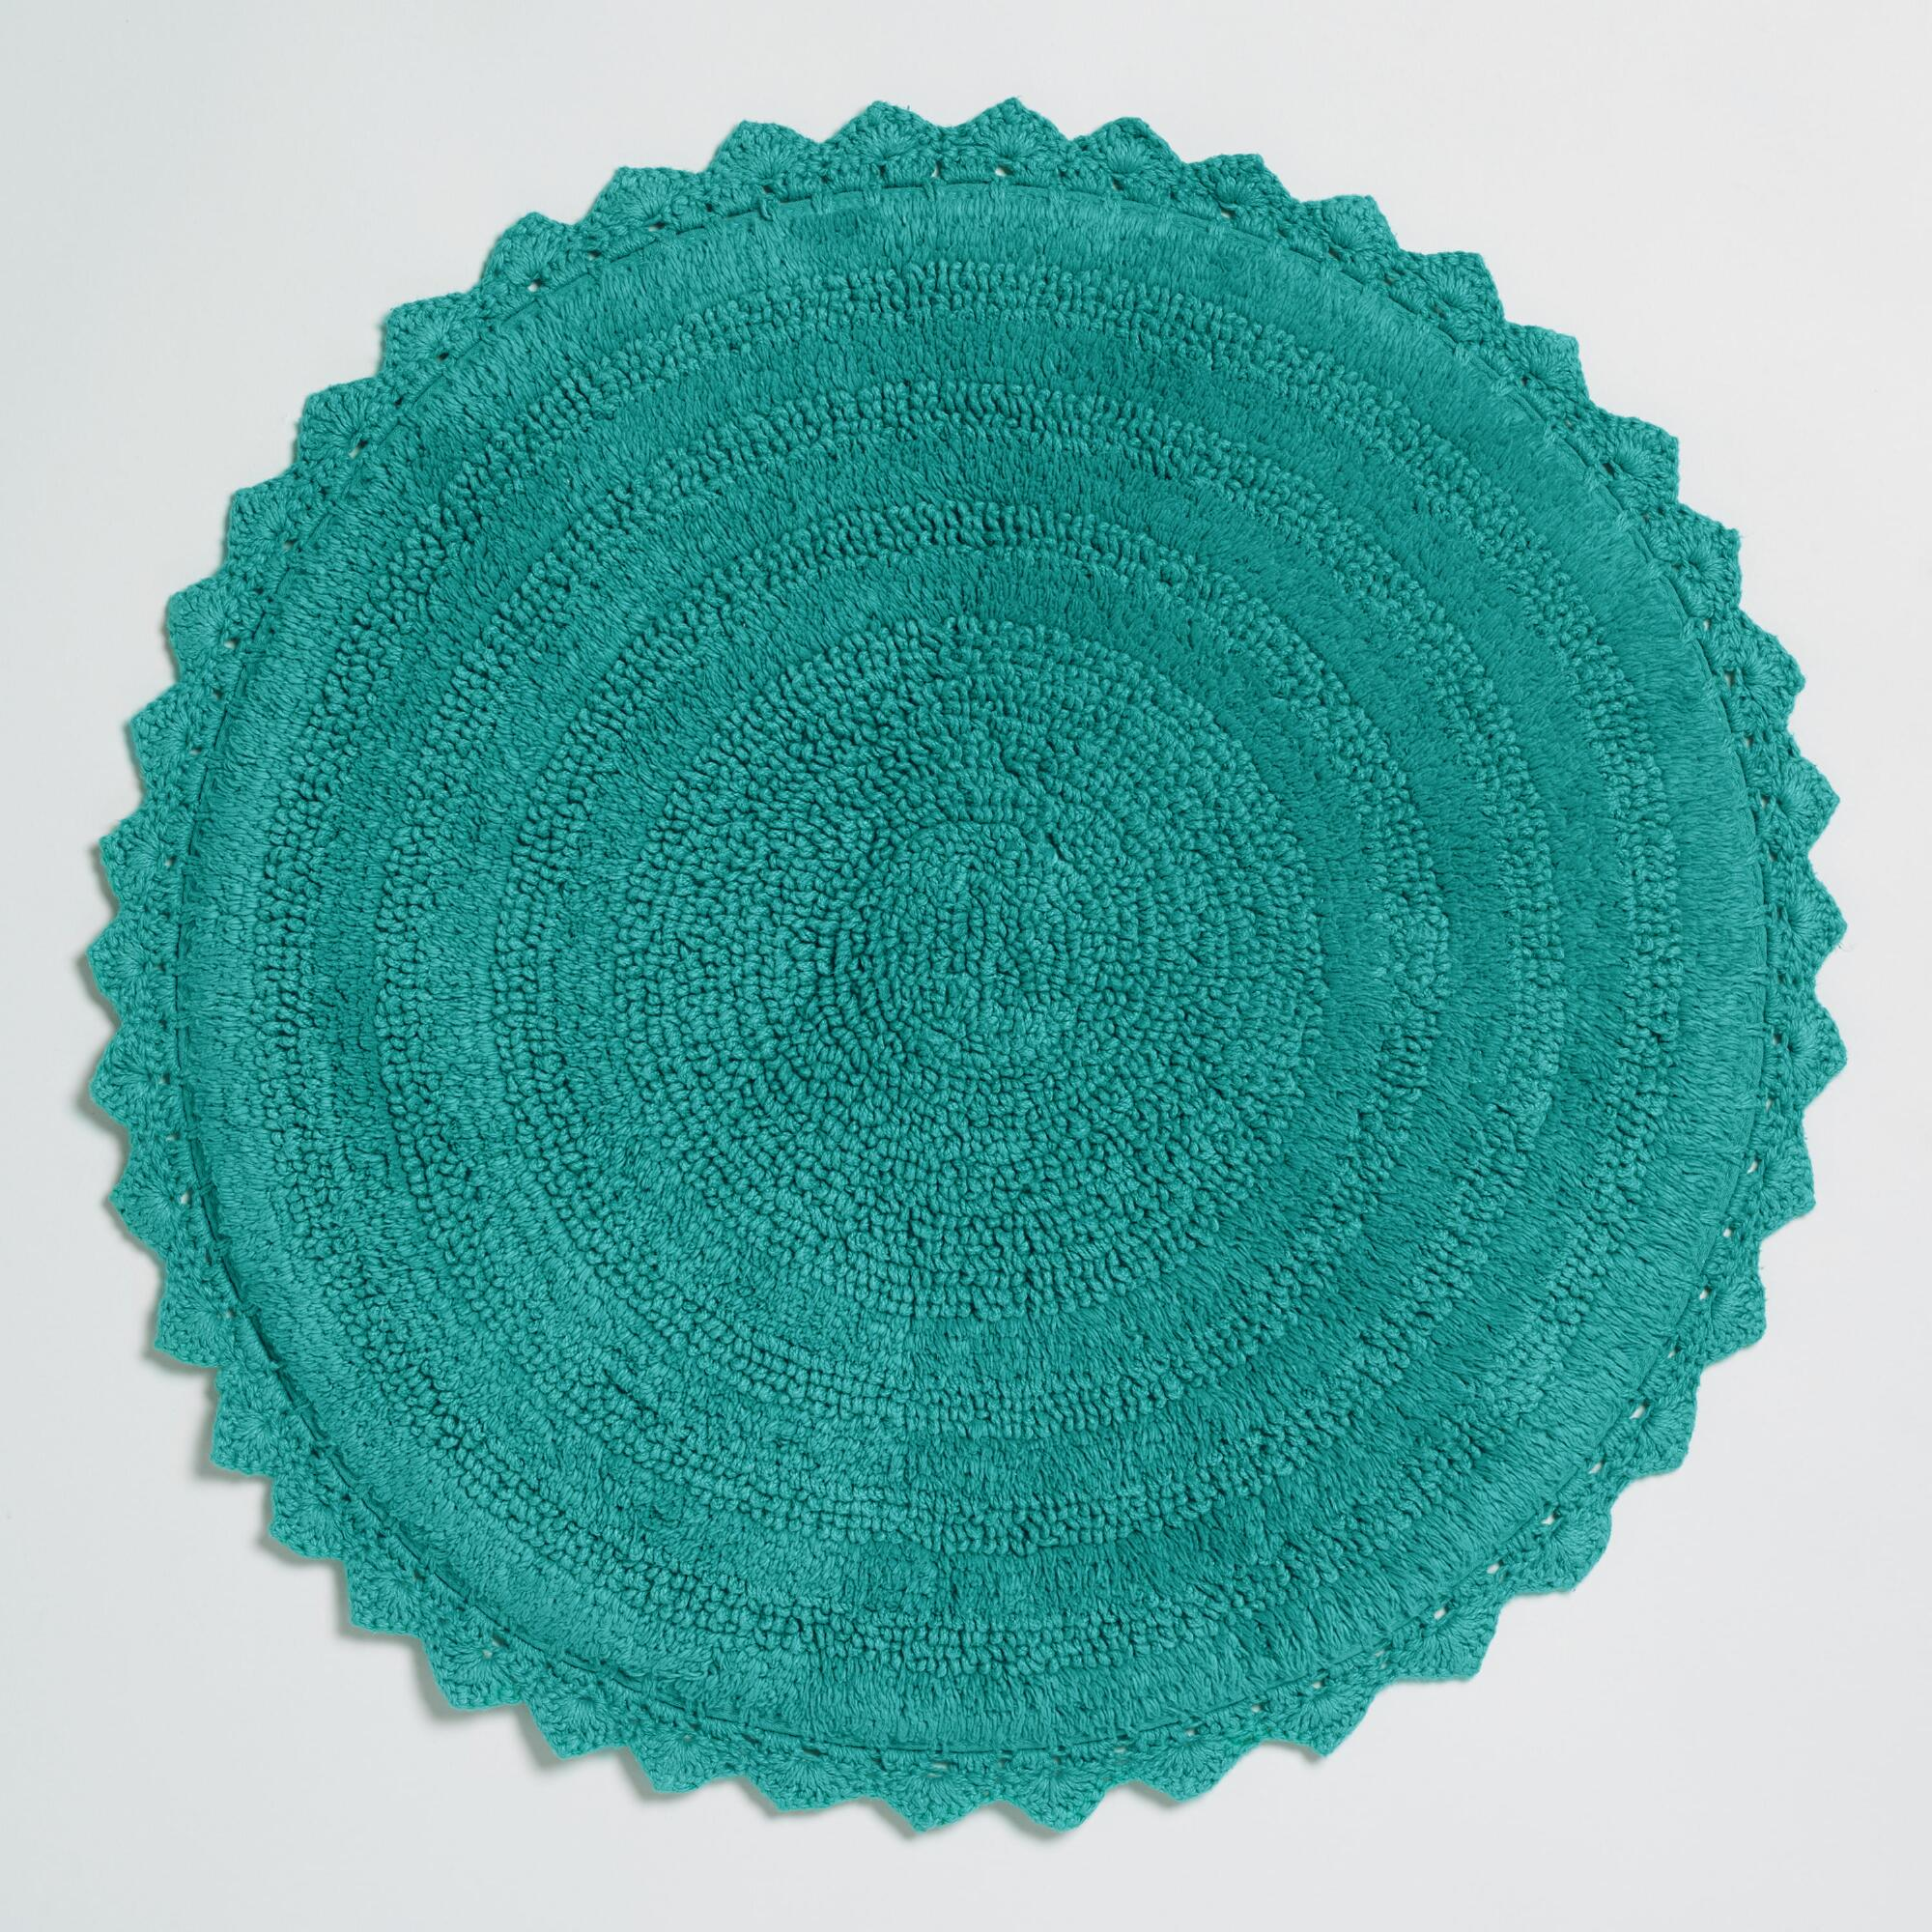 teal bathroom rugs nice look home designing ideas picture round cotton bath mat world market bathroom mat delonhocom 1000